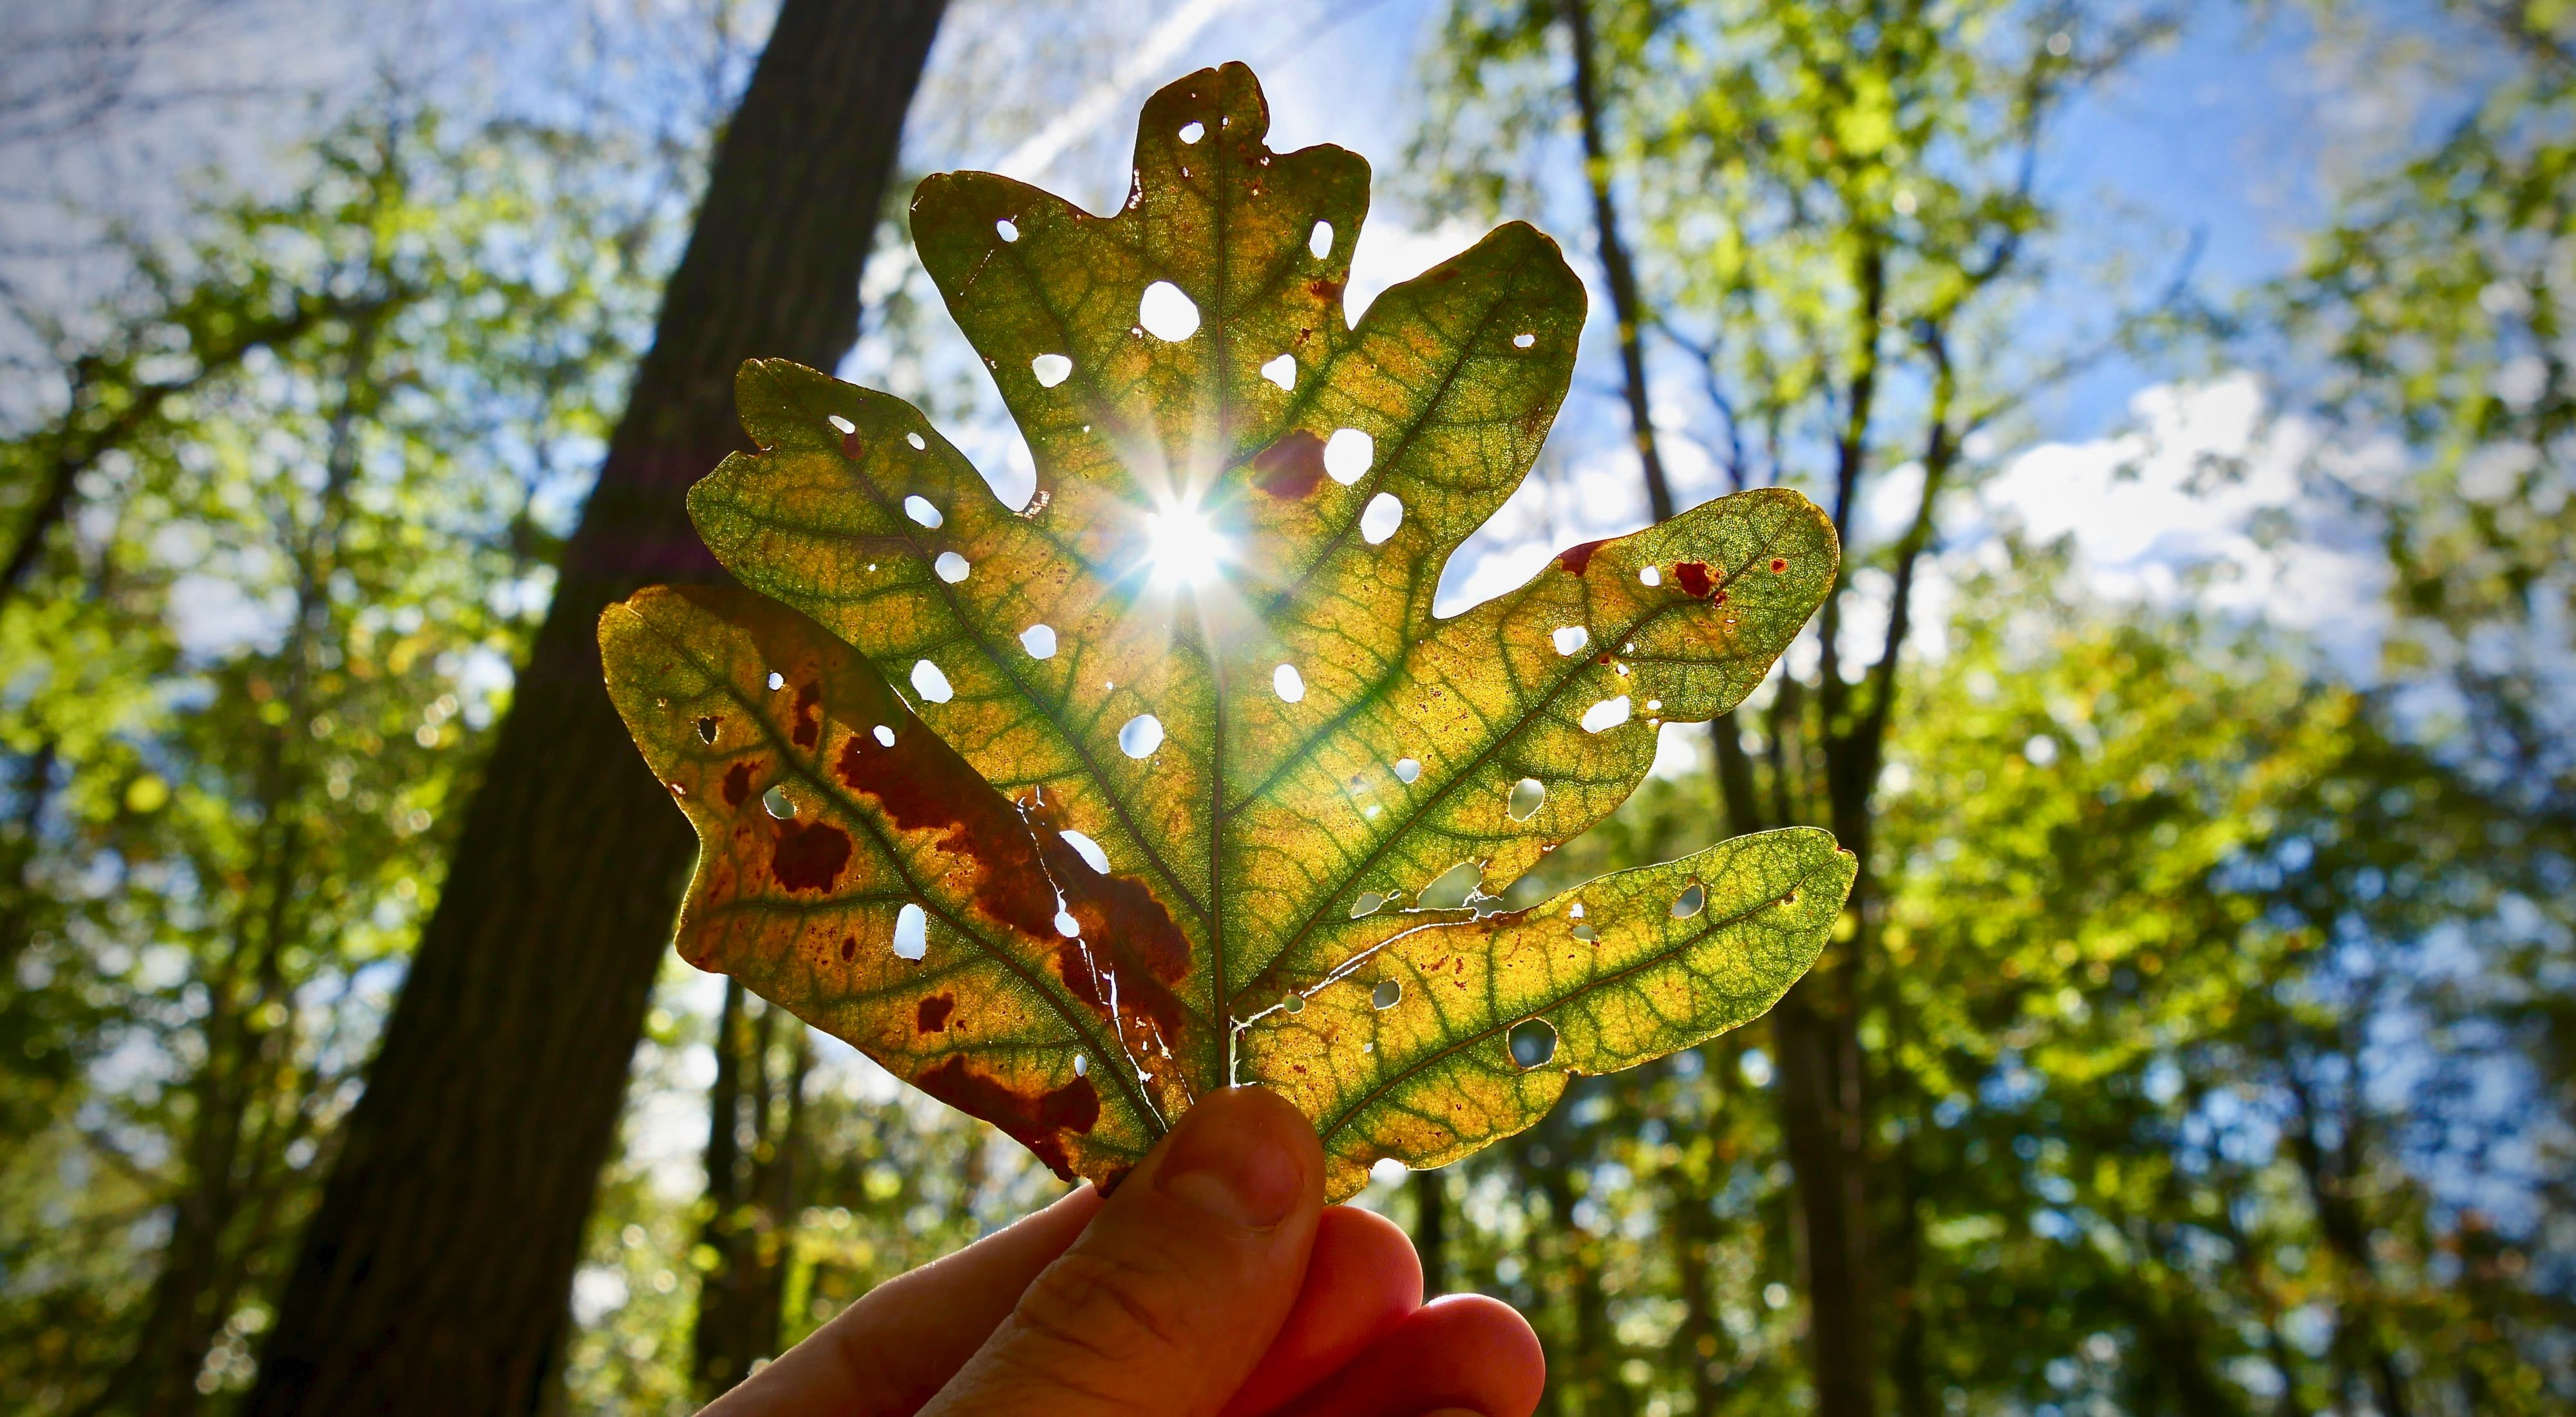 A hand holding up an oak leaf in front of the sun.